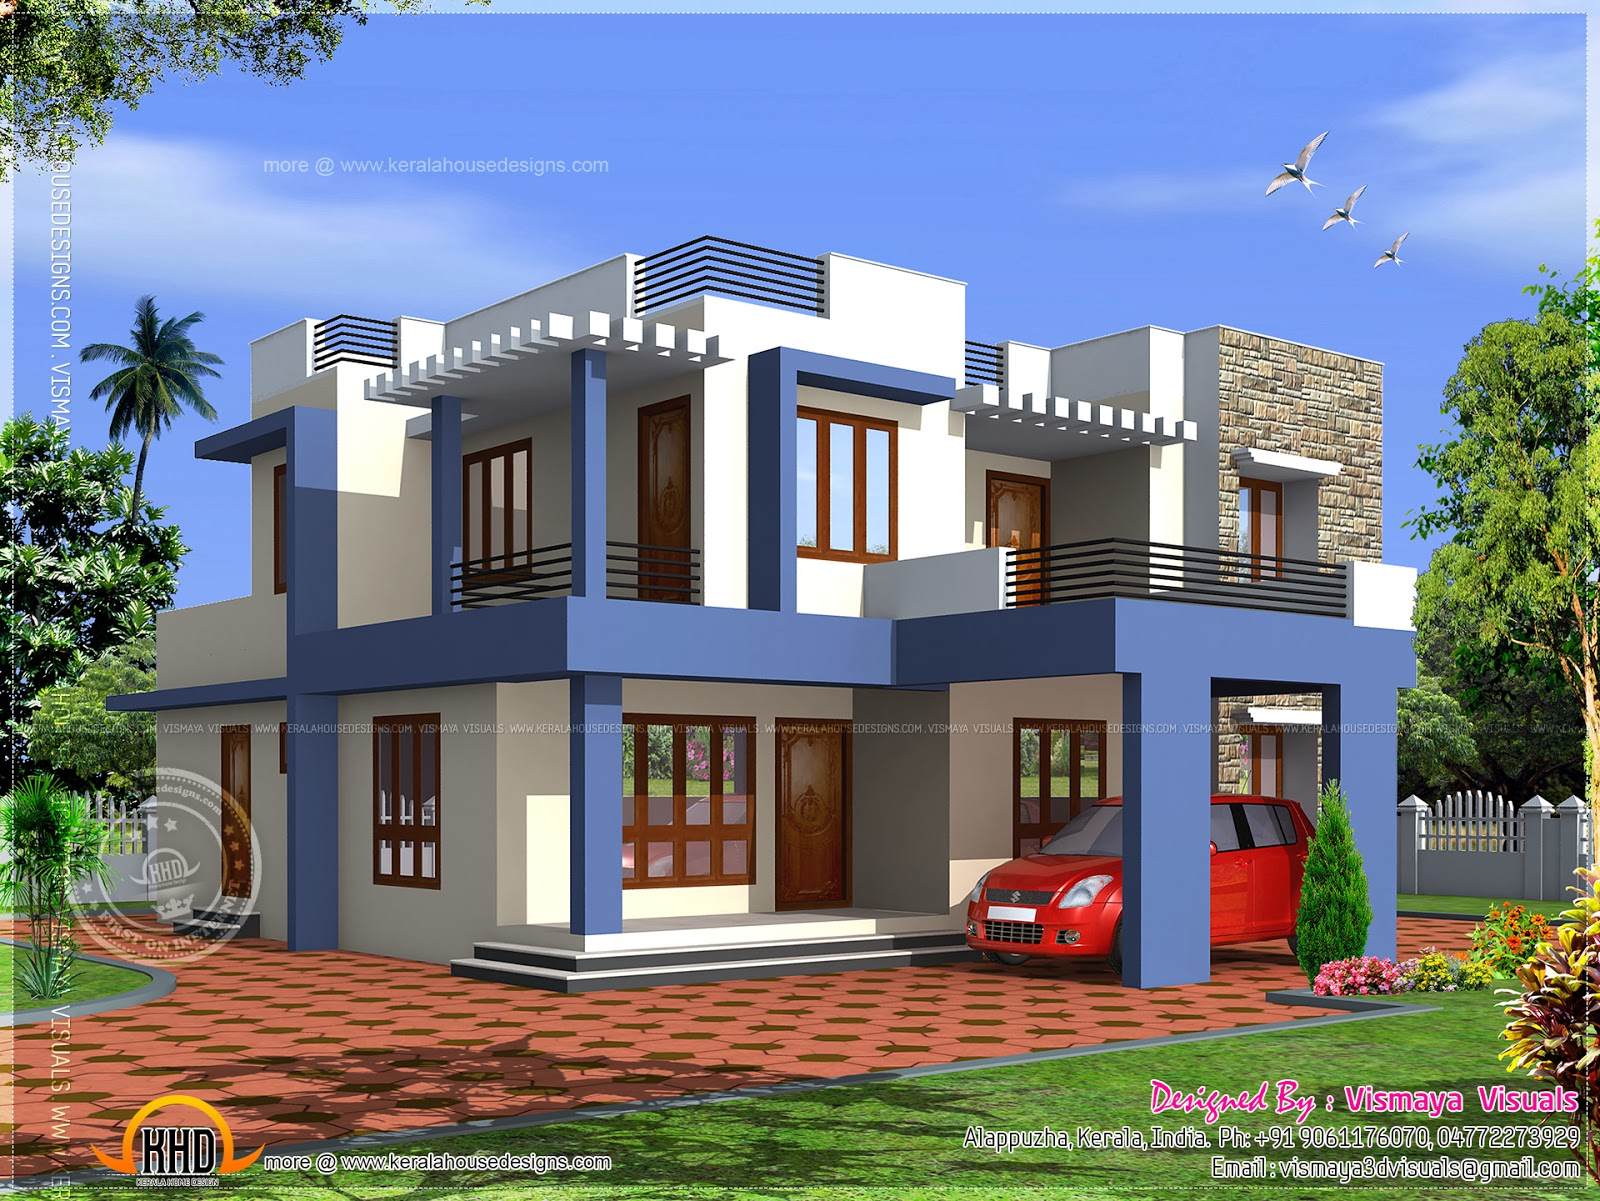 Box type 4 bedroom villa kerala home design and floor plans for All types of houses pictures